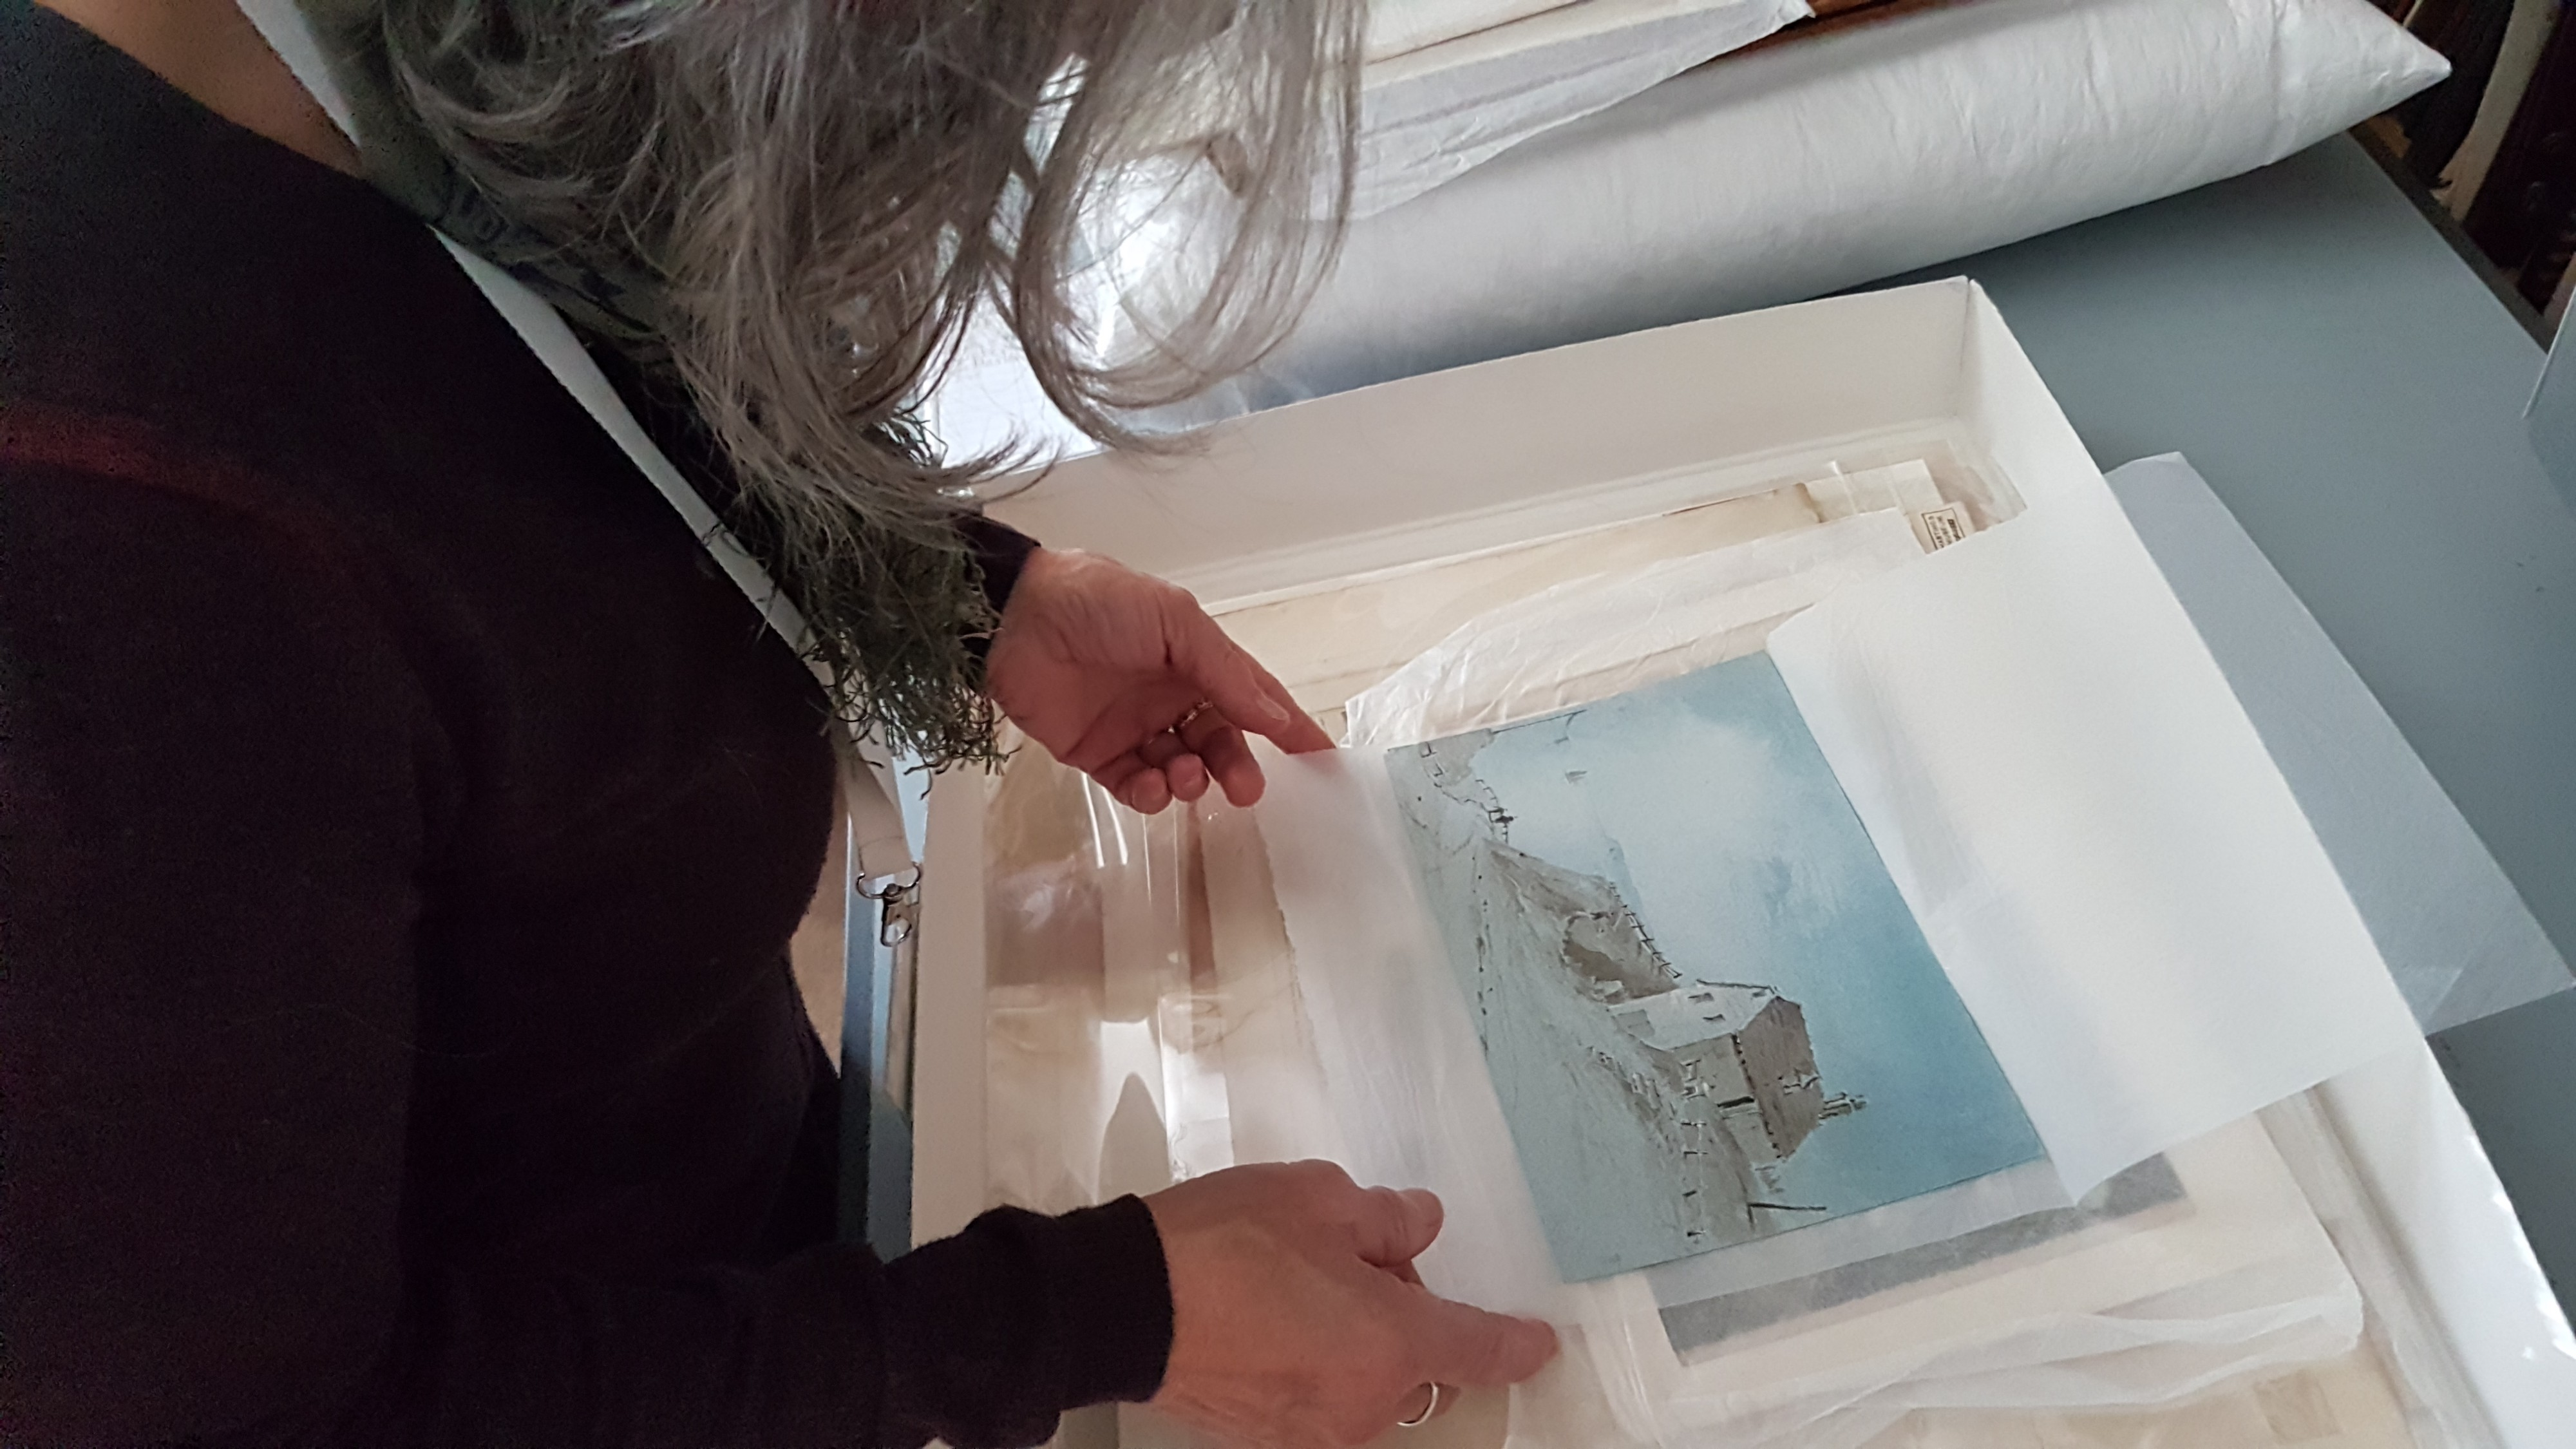 shows someone examining an engraving from a tissue paper-lined archive box. (Photo by Jon Pratty)